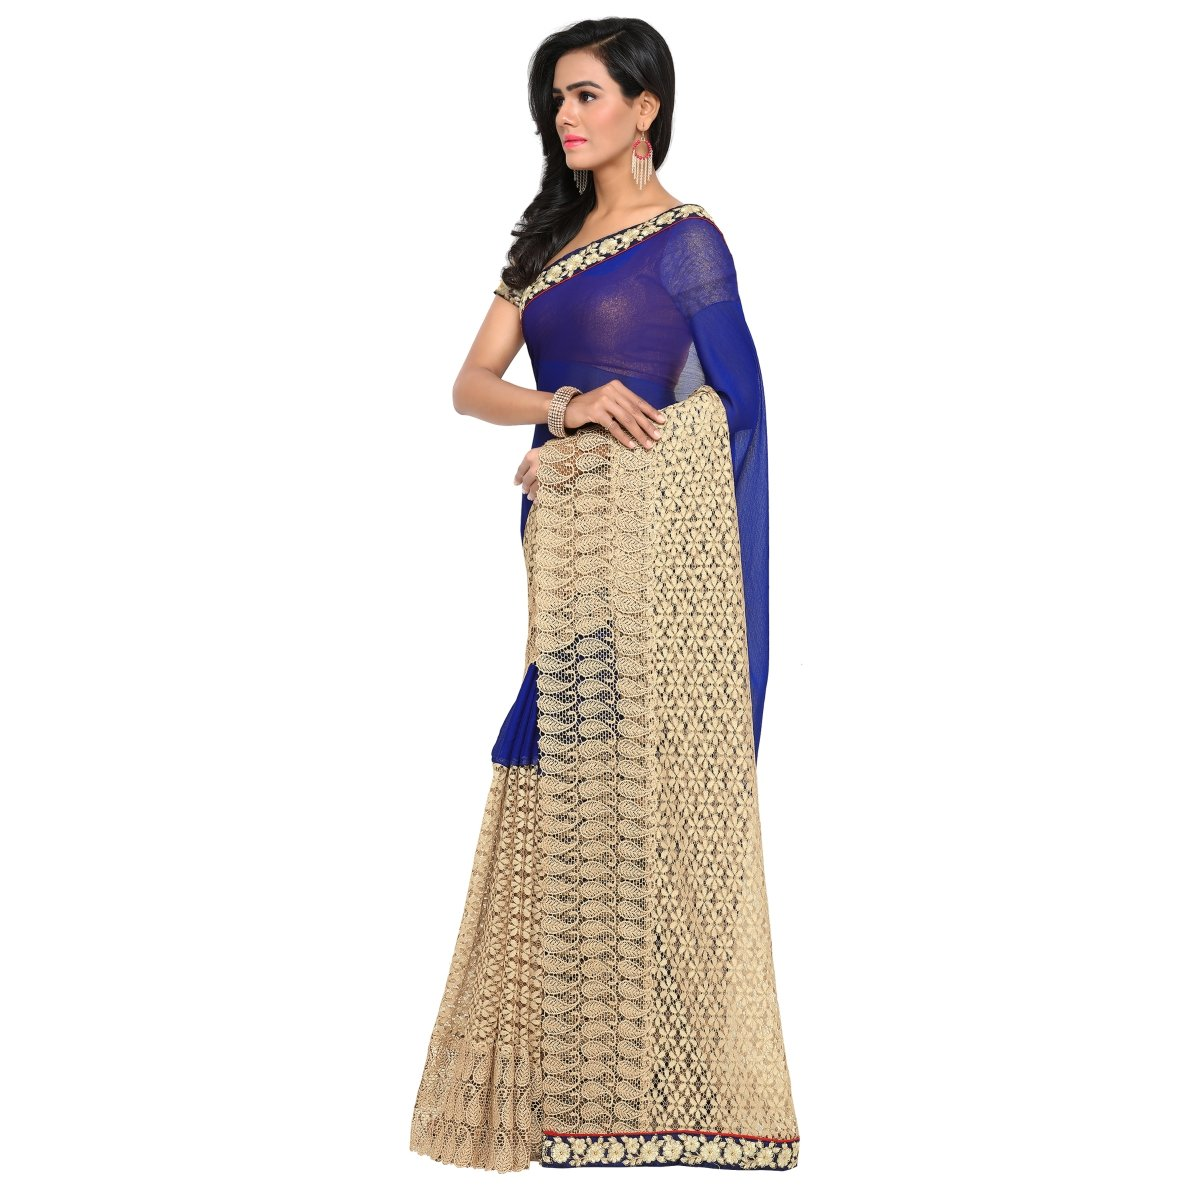 f1221092ce Aagaman Fashions Indian Women's Blue Chiffon Embroidered Saree, Sari: Amazon .co.uk: Clothing